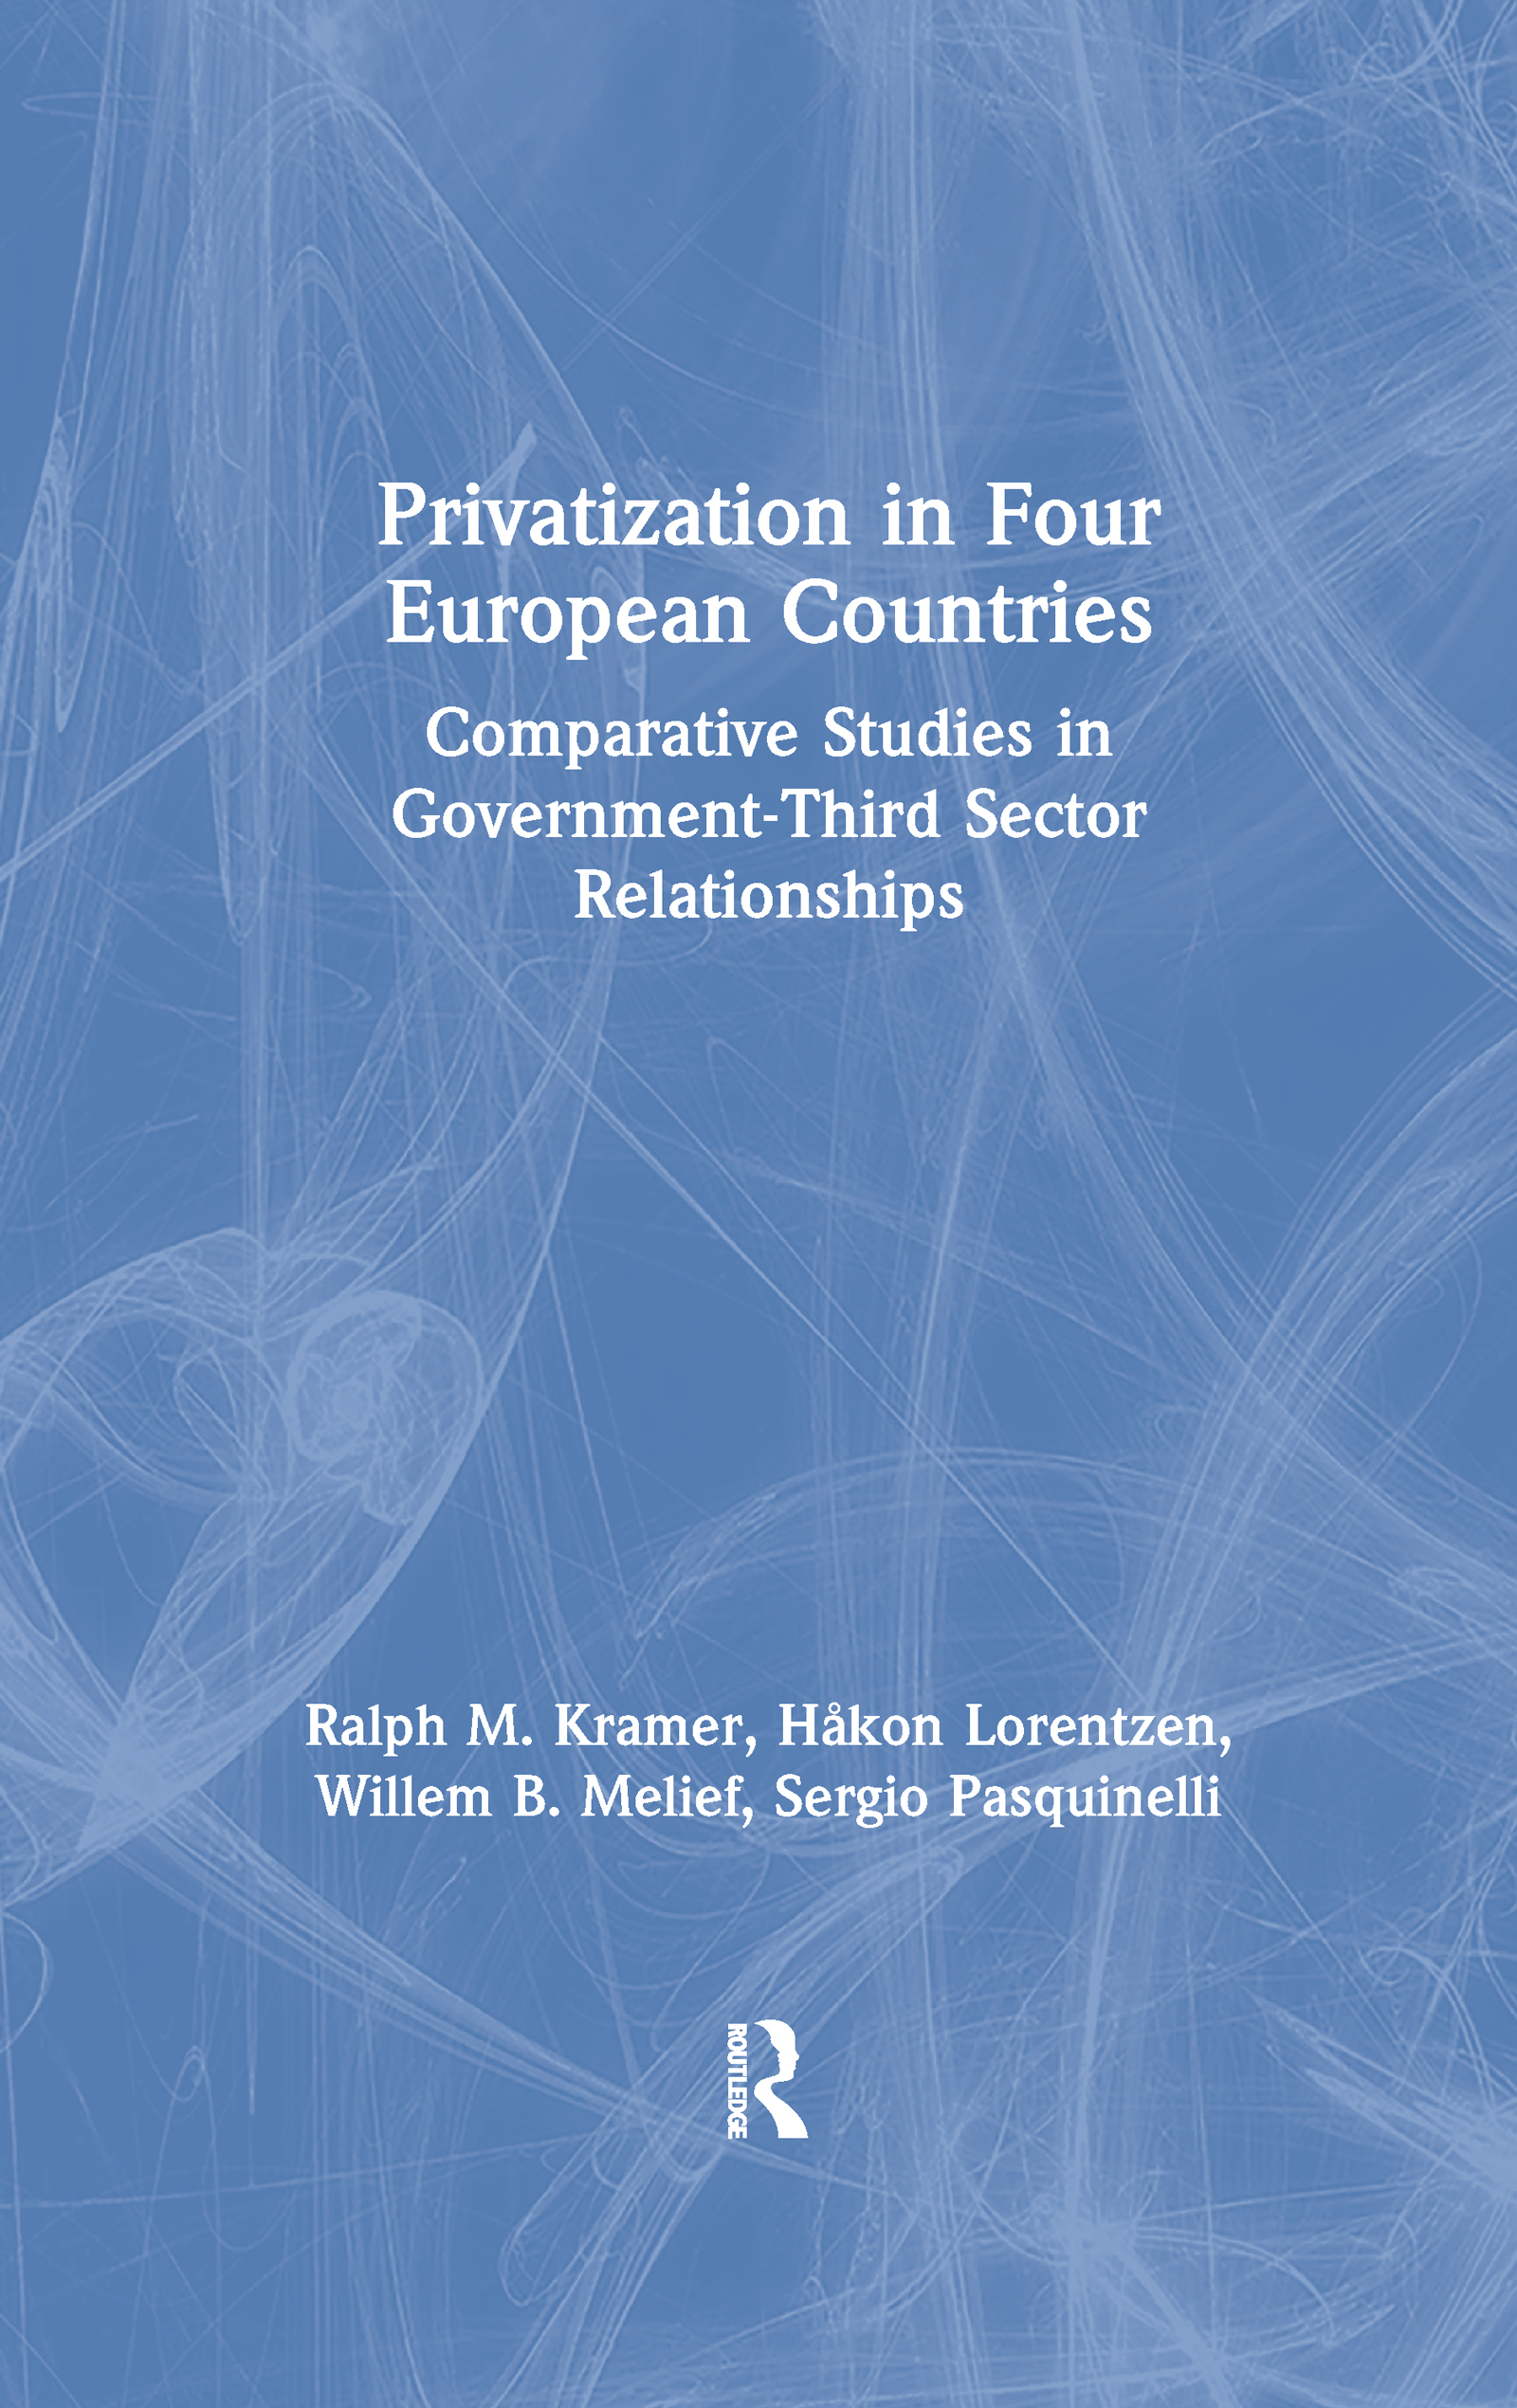 Privatization in Four European Countries: Comparative Studies in Government - Third Sector Relationships: Comparative Studies in Government - Third Sector Relationships book cover